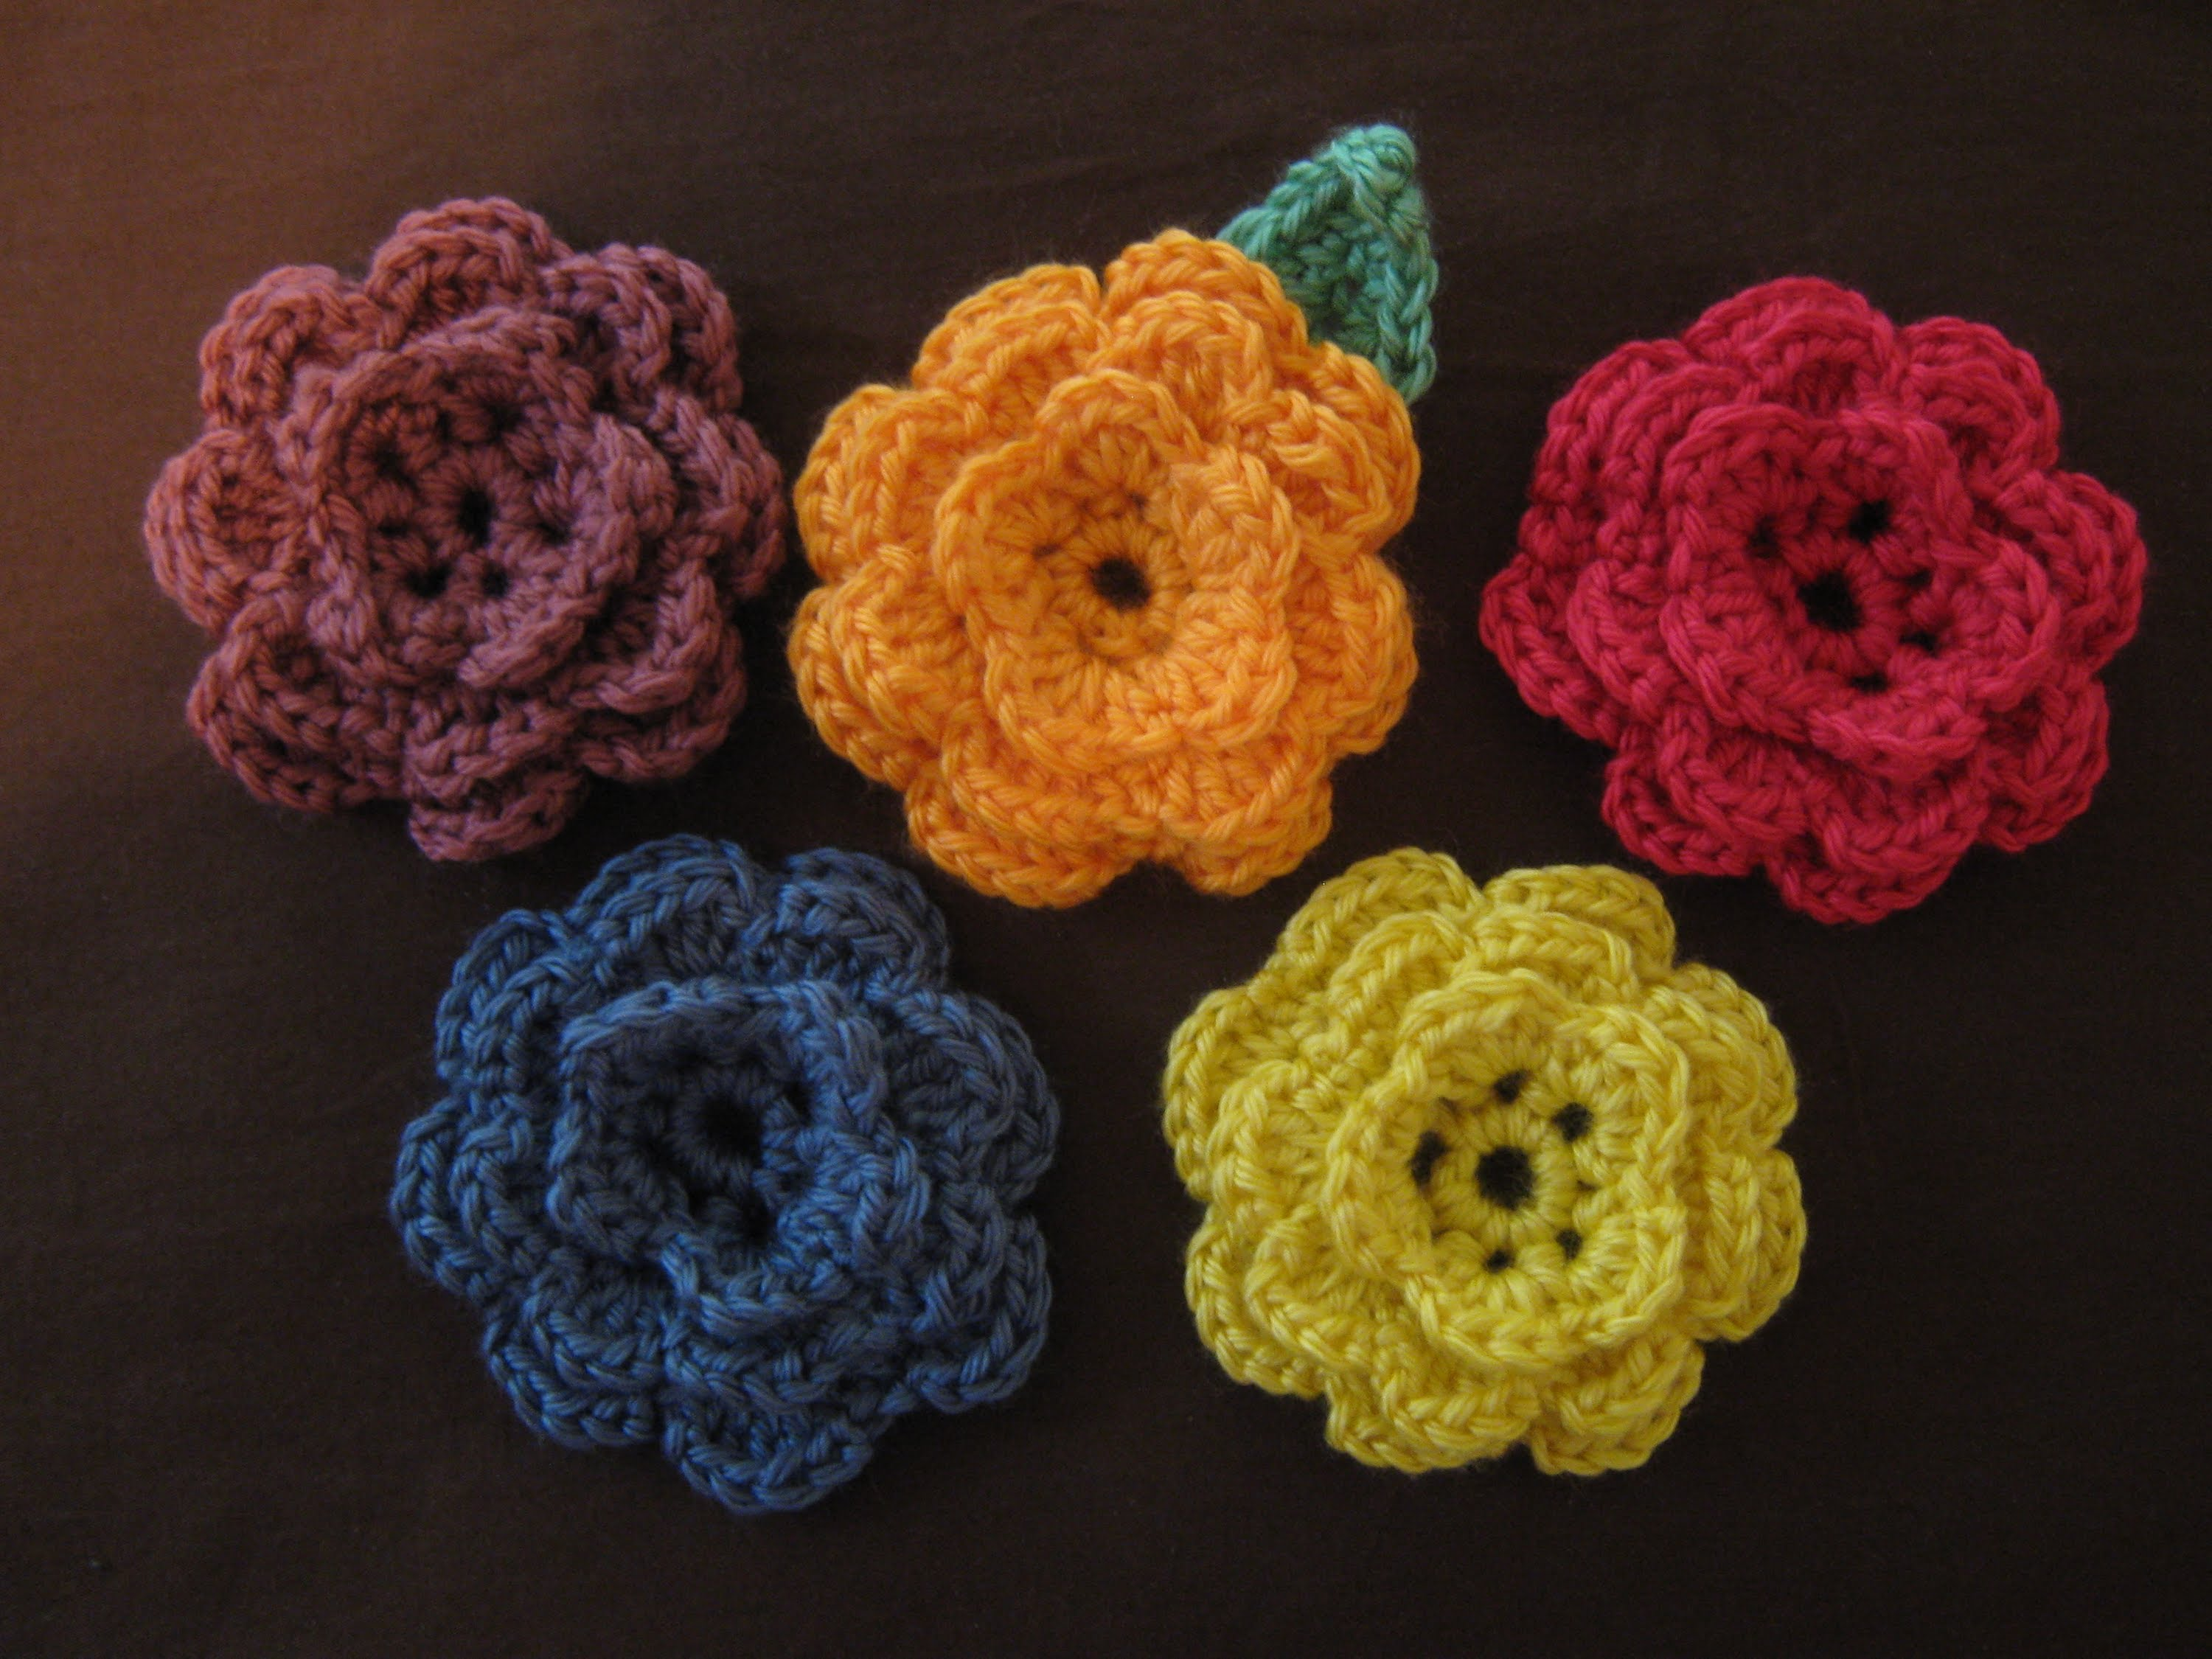 Crochet Daily : ... To Make A Lovely Crochet Flower For Headband - Knit And Crochet Daily